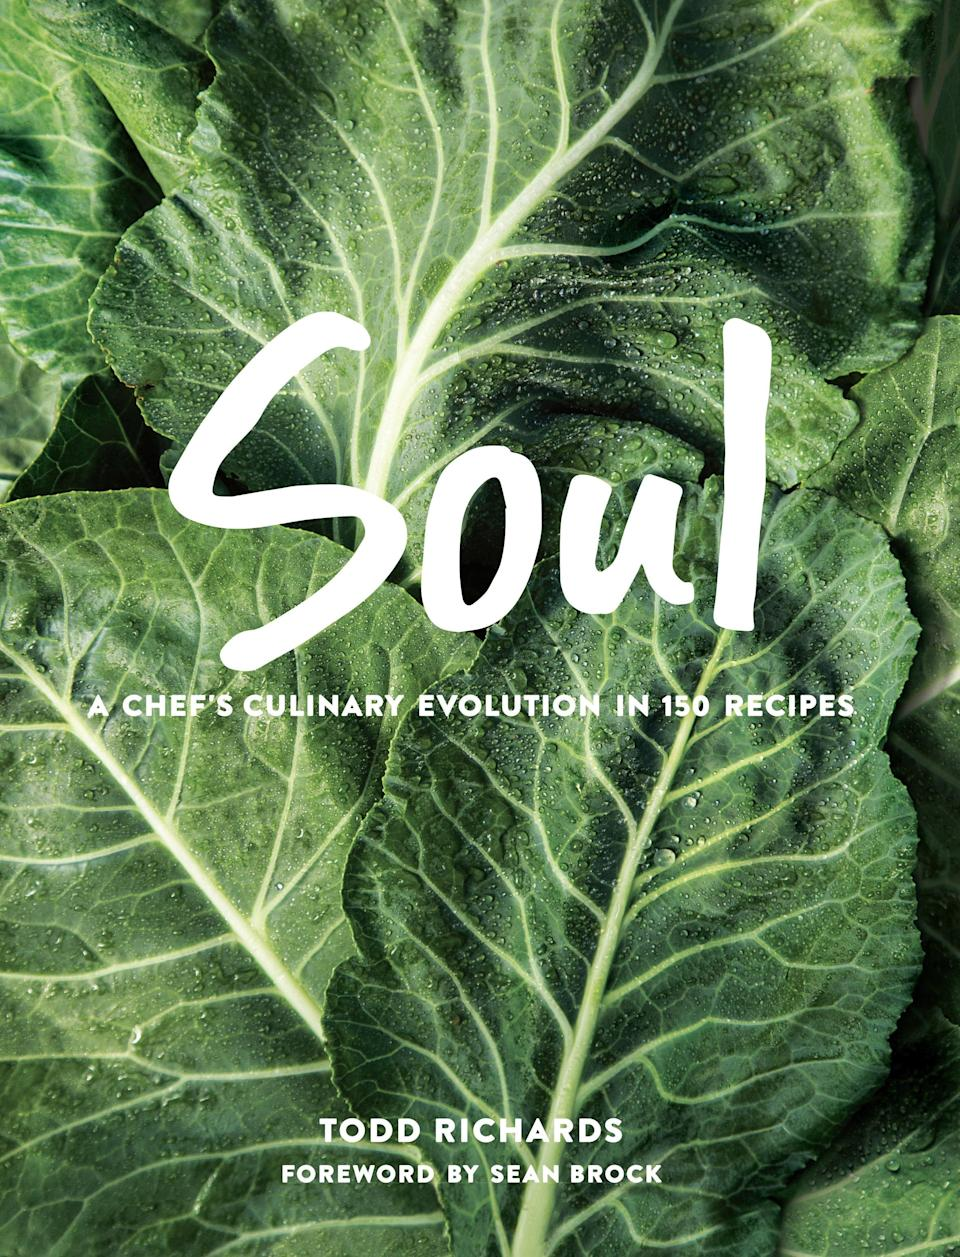 "<h1 class=""title"">Soul: A Chef's Culinary Evolution in 150 Recipes by Todd Richards</h1> <div class=""caption""> Get <em>Soul</em> by Todd Richards at <a href=""https://www.amazon.com/SOUL-Chefs-Culinary-Evolution-Recipes/dp/0848754417"" rel=""nofollow noopener"" target=""_blank"" data-ylk=""slk:Amazon"" class=""link rapid-noclick-resp"">Amazon</a>. </div>"